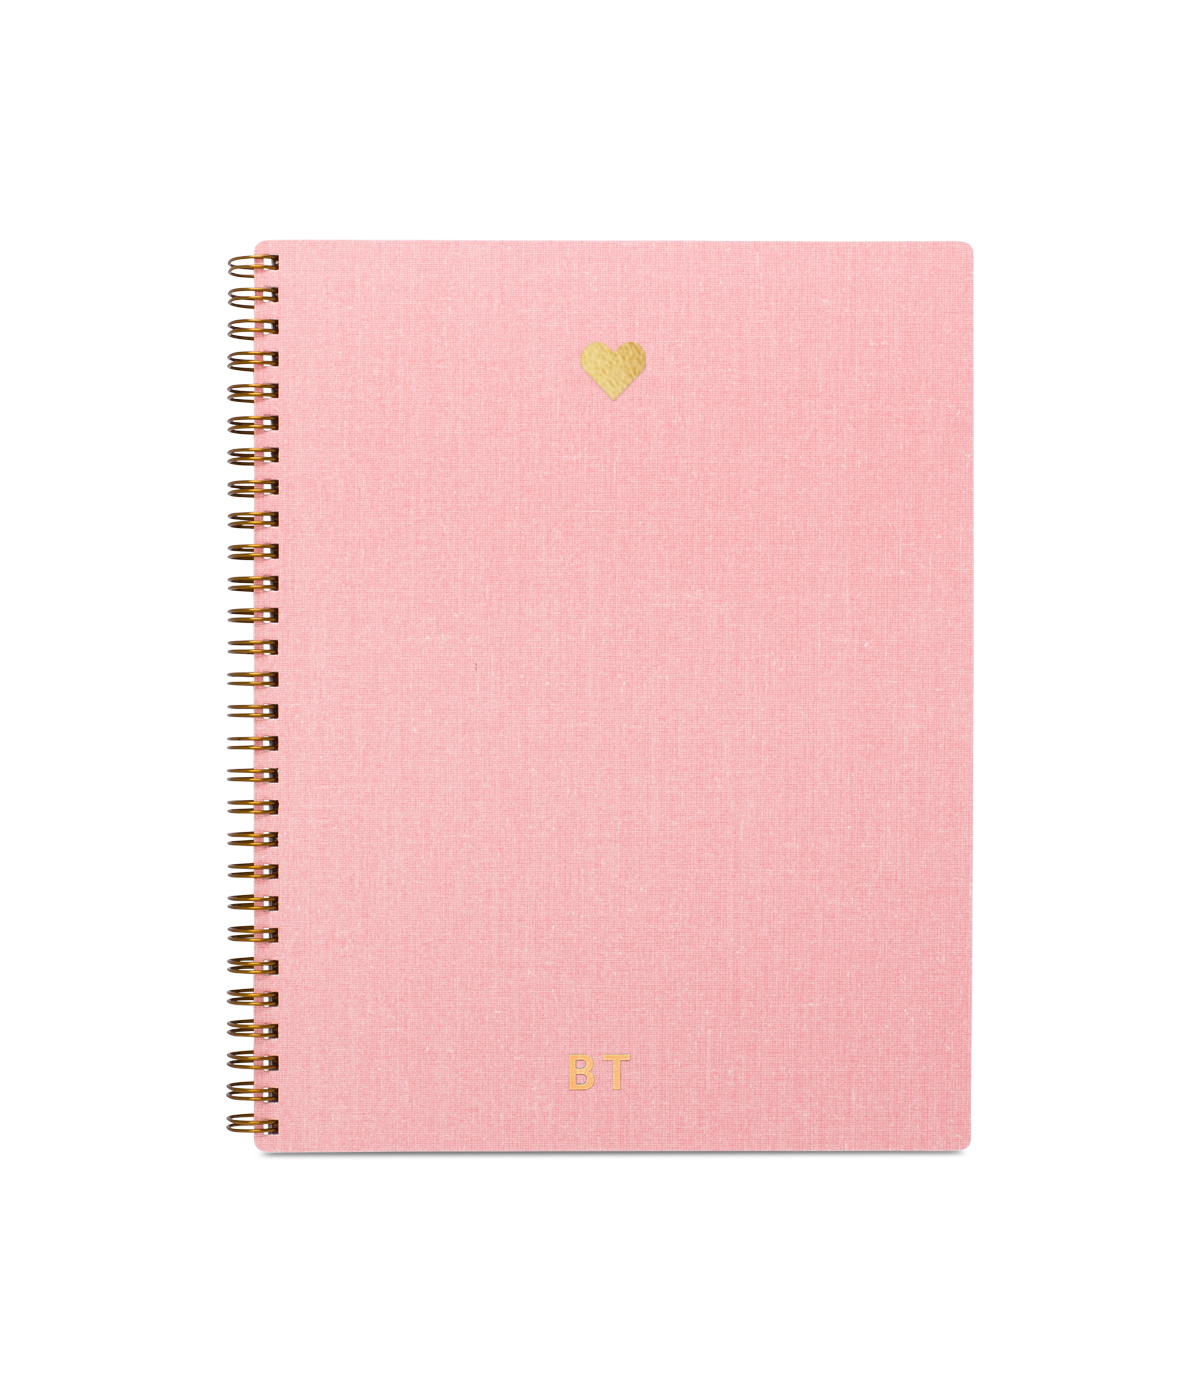 blush pink heart notebook with gold embossed detail